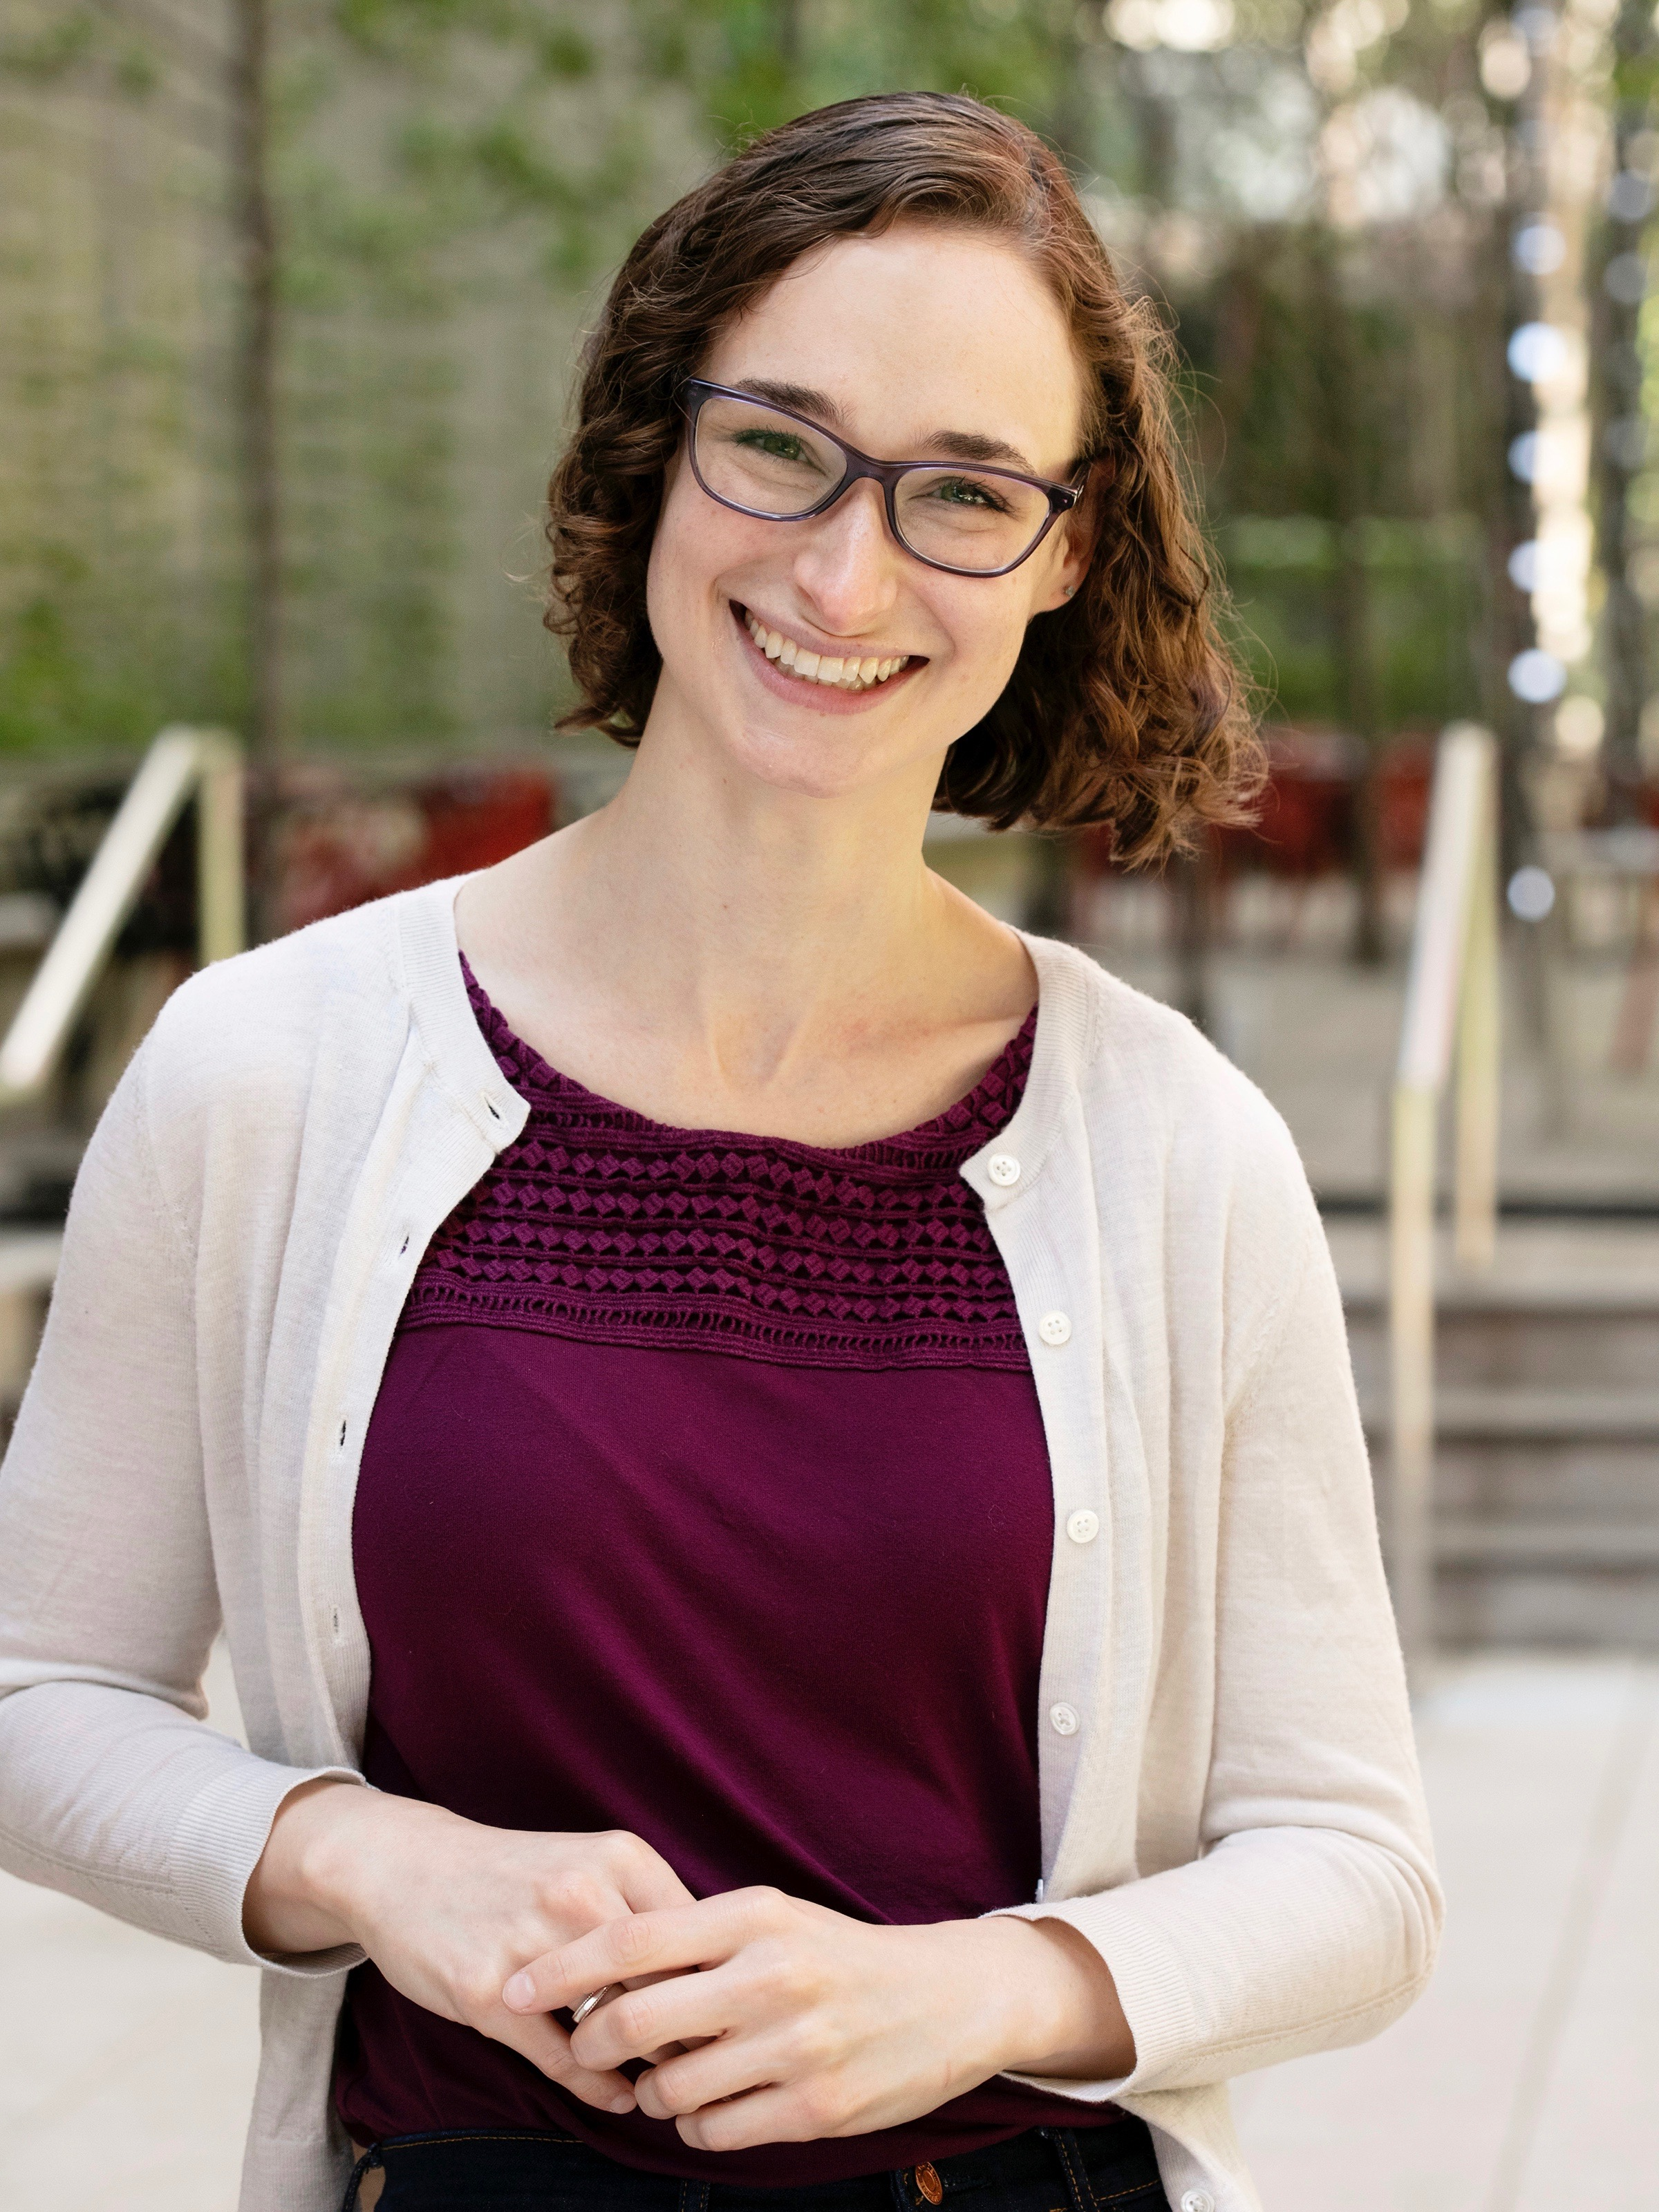 Alexandra Haley Miller - Alexandra Miller grew up in Cleveland, Ohio, then attended Columbia University and graduated with a degree in biochemistry in 2014. After college, she worked at the National Institutes of Health for a year as a post-baccalaureate intramural research training award fellow before starting the Tri-I MD-PhD program in 2015. Alexandra joined Dr. Sabine Ehrt's lab in the fall of 2017. Her project uses molecular biology and genetic techniques to identify mycobacterial genes required during nutrient starvation. Outside of lab, she is interested in promoting health equity and works as the research coordinator for the Weill Cornell Community Clinic, Cornell's student-run free clinic. For fun, she plays the violin and hangs out with her cat, Sasha!